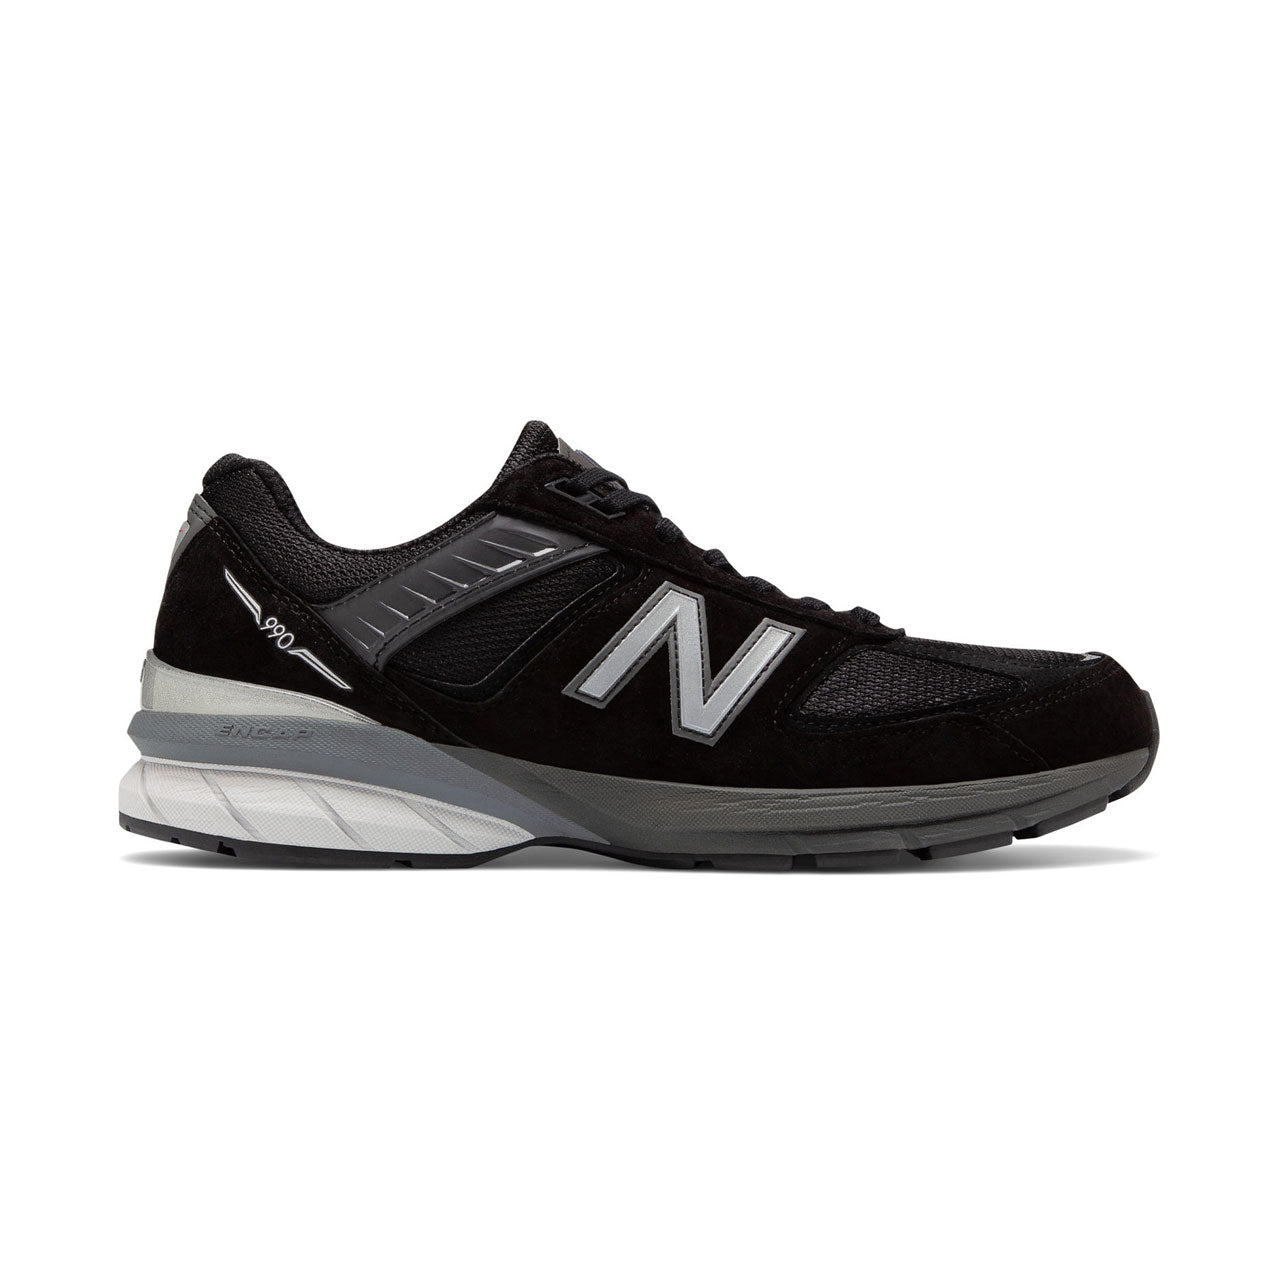 New Balance 990v5 Black Tonal Sneakers